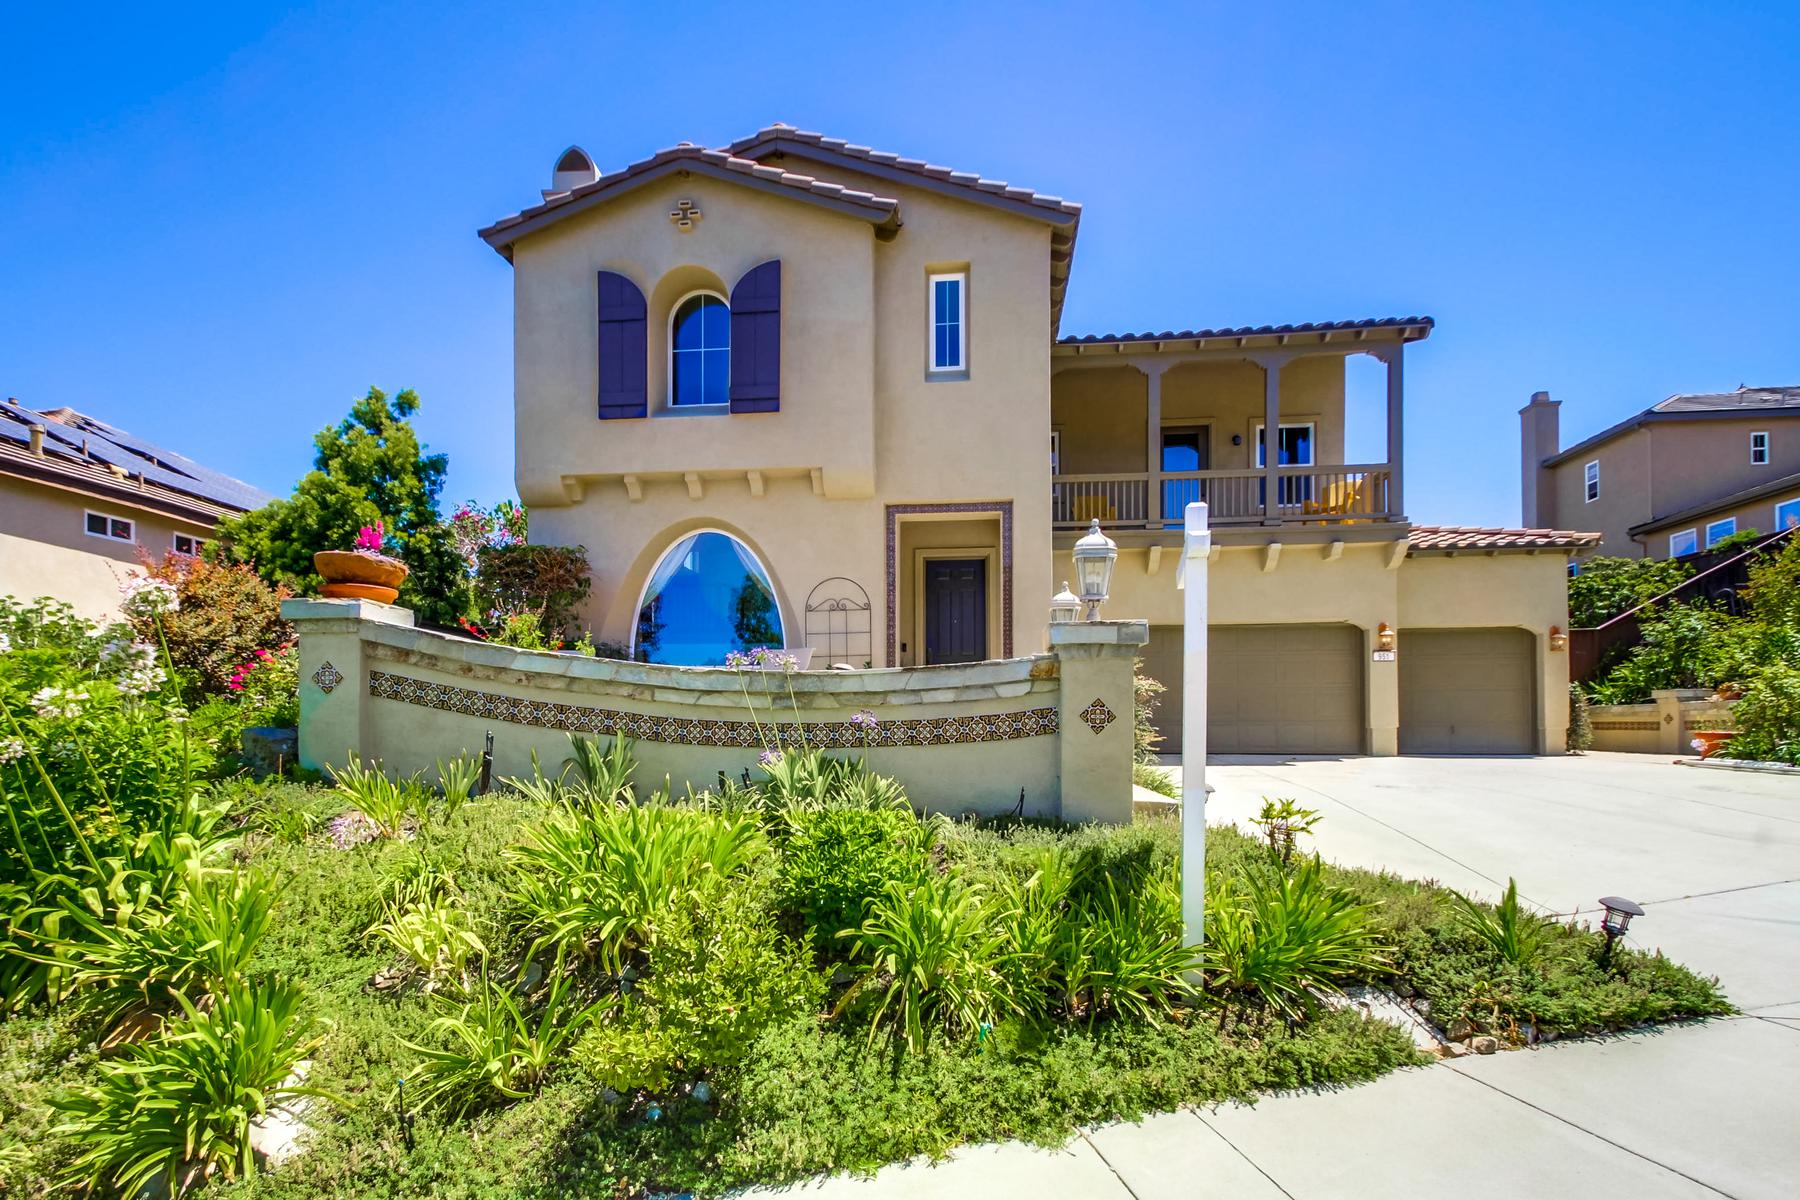 Single Family Homes for Sale at 951 Stoneridge Way San Marcos, California 92078 United States